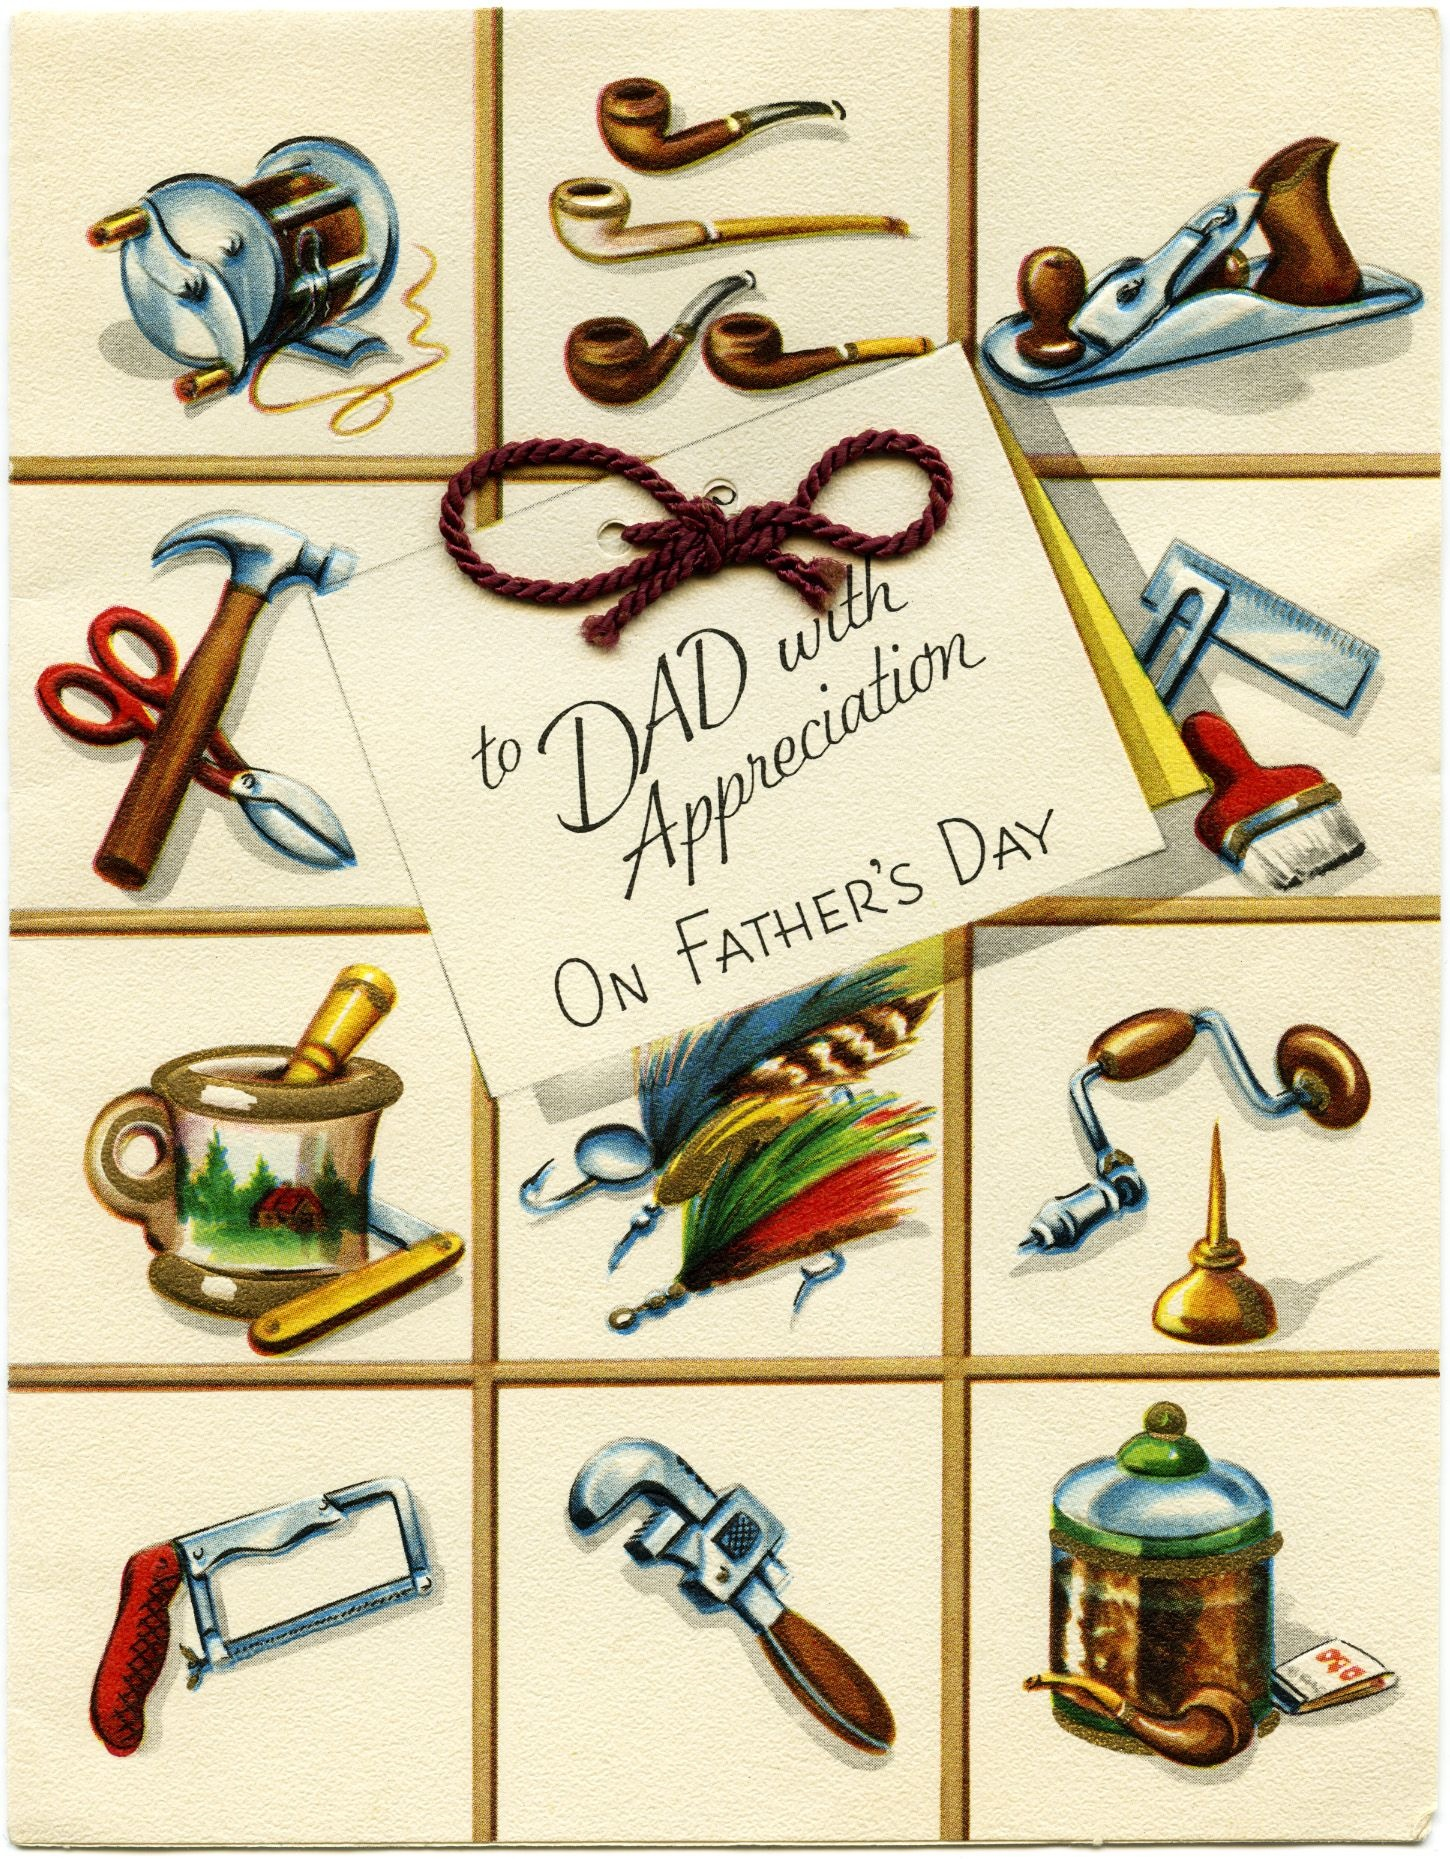 Free Printable Fathers Day Cards | Vintage Fathers Day Greeting Card - Hallmark Free Printable Fathers Day Cards